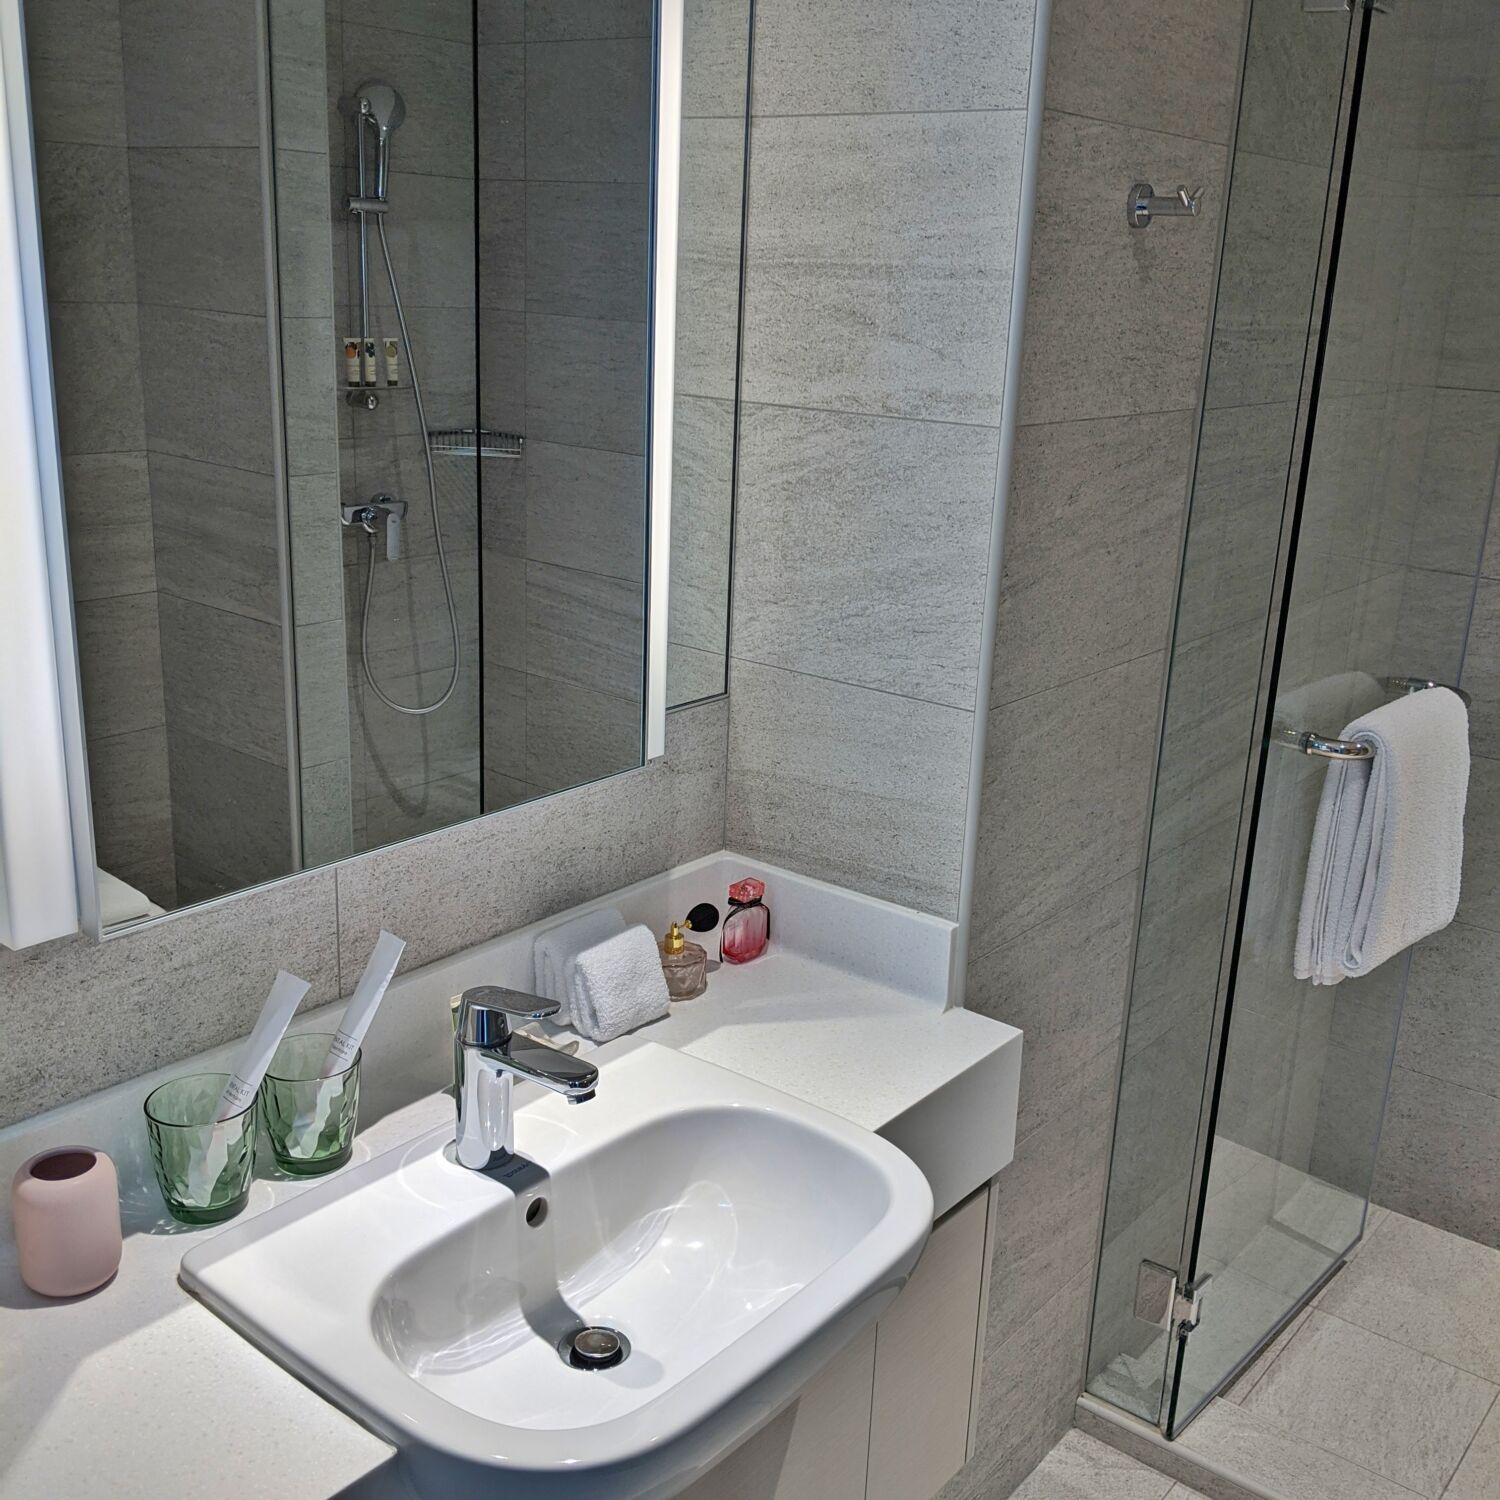 Winsland Serviced Suites by Lanson Place Two-Bedroom Executive Suite Bathroom